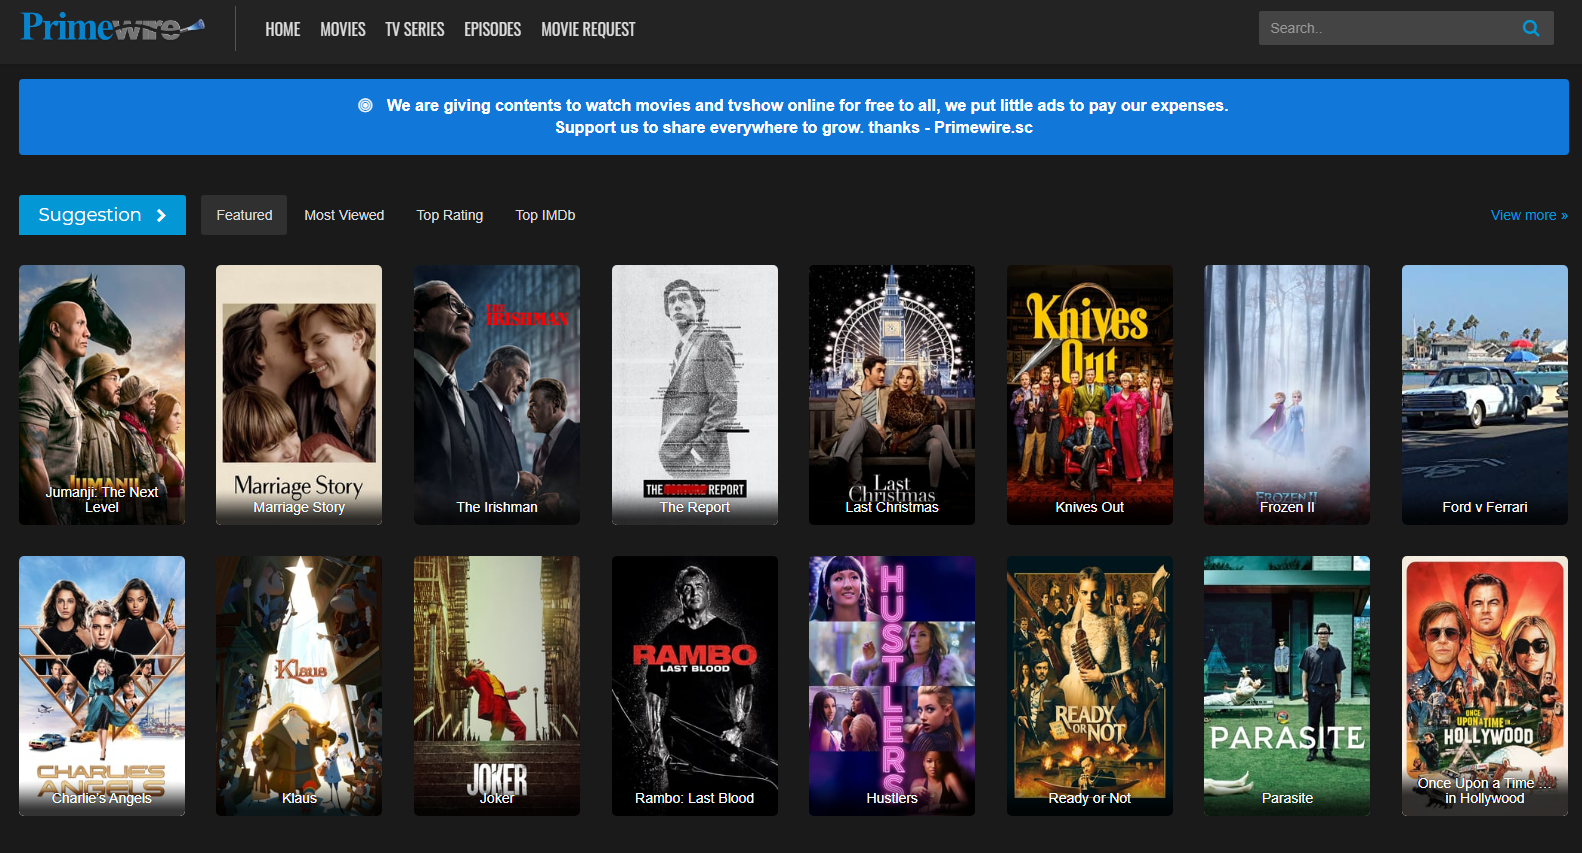 15 Best Primewire Alternatives to Watch Latest Movies and TV Series